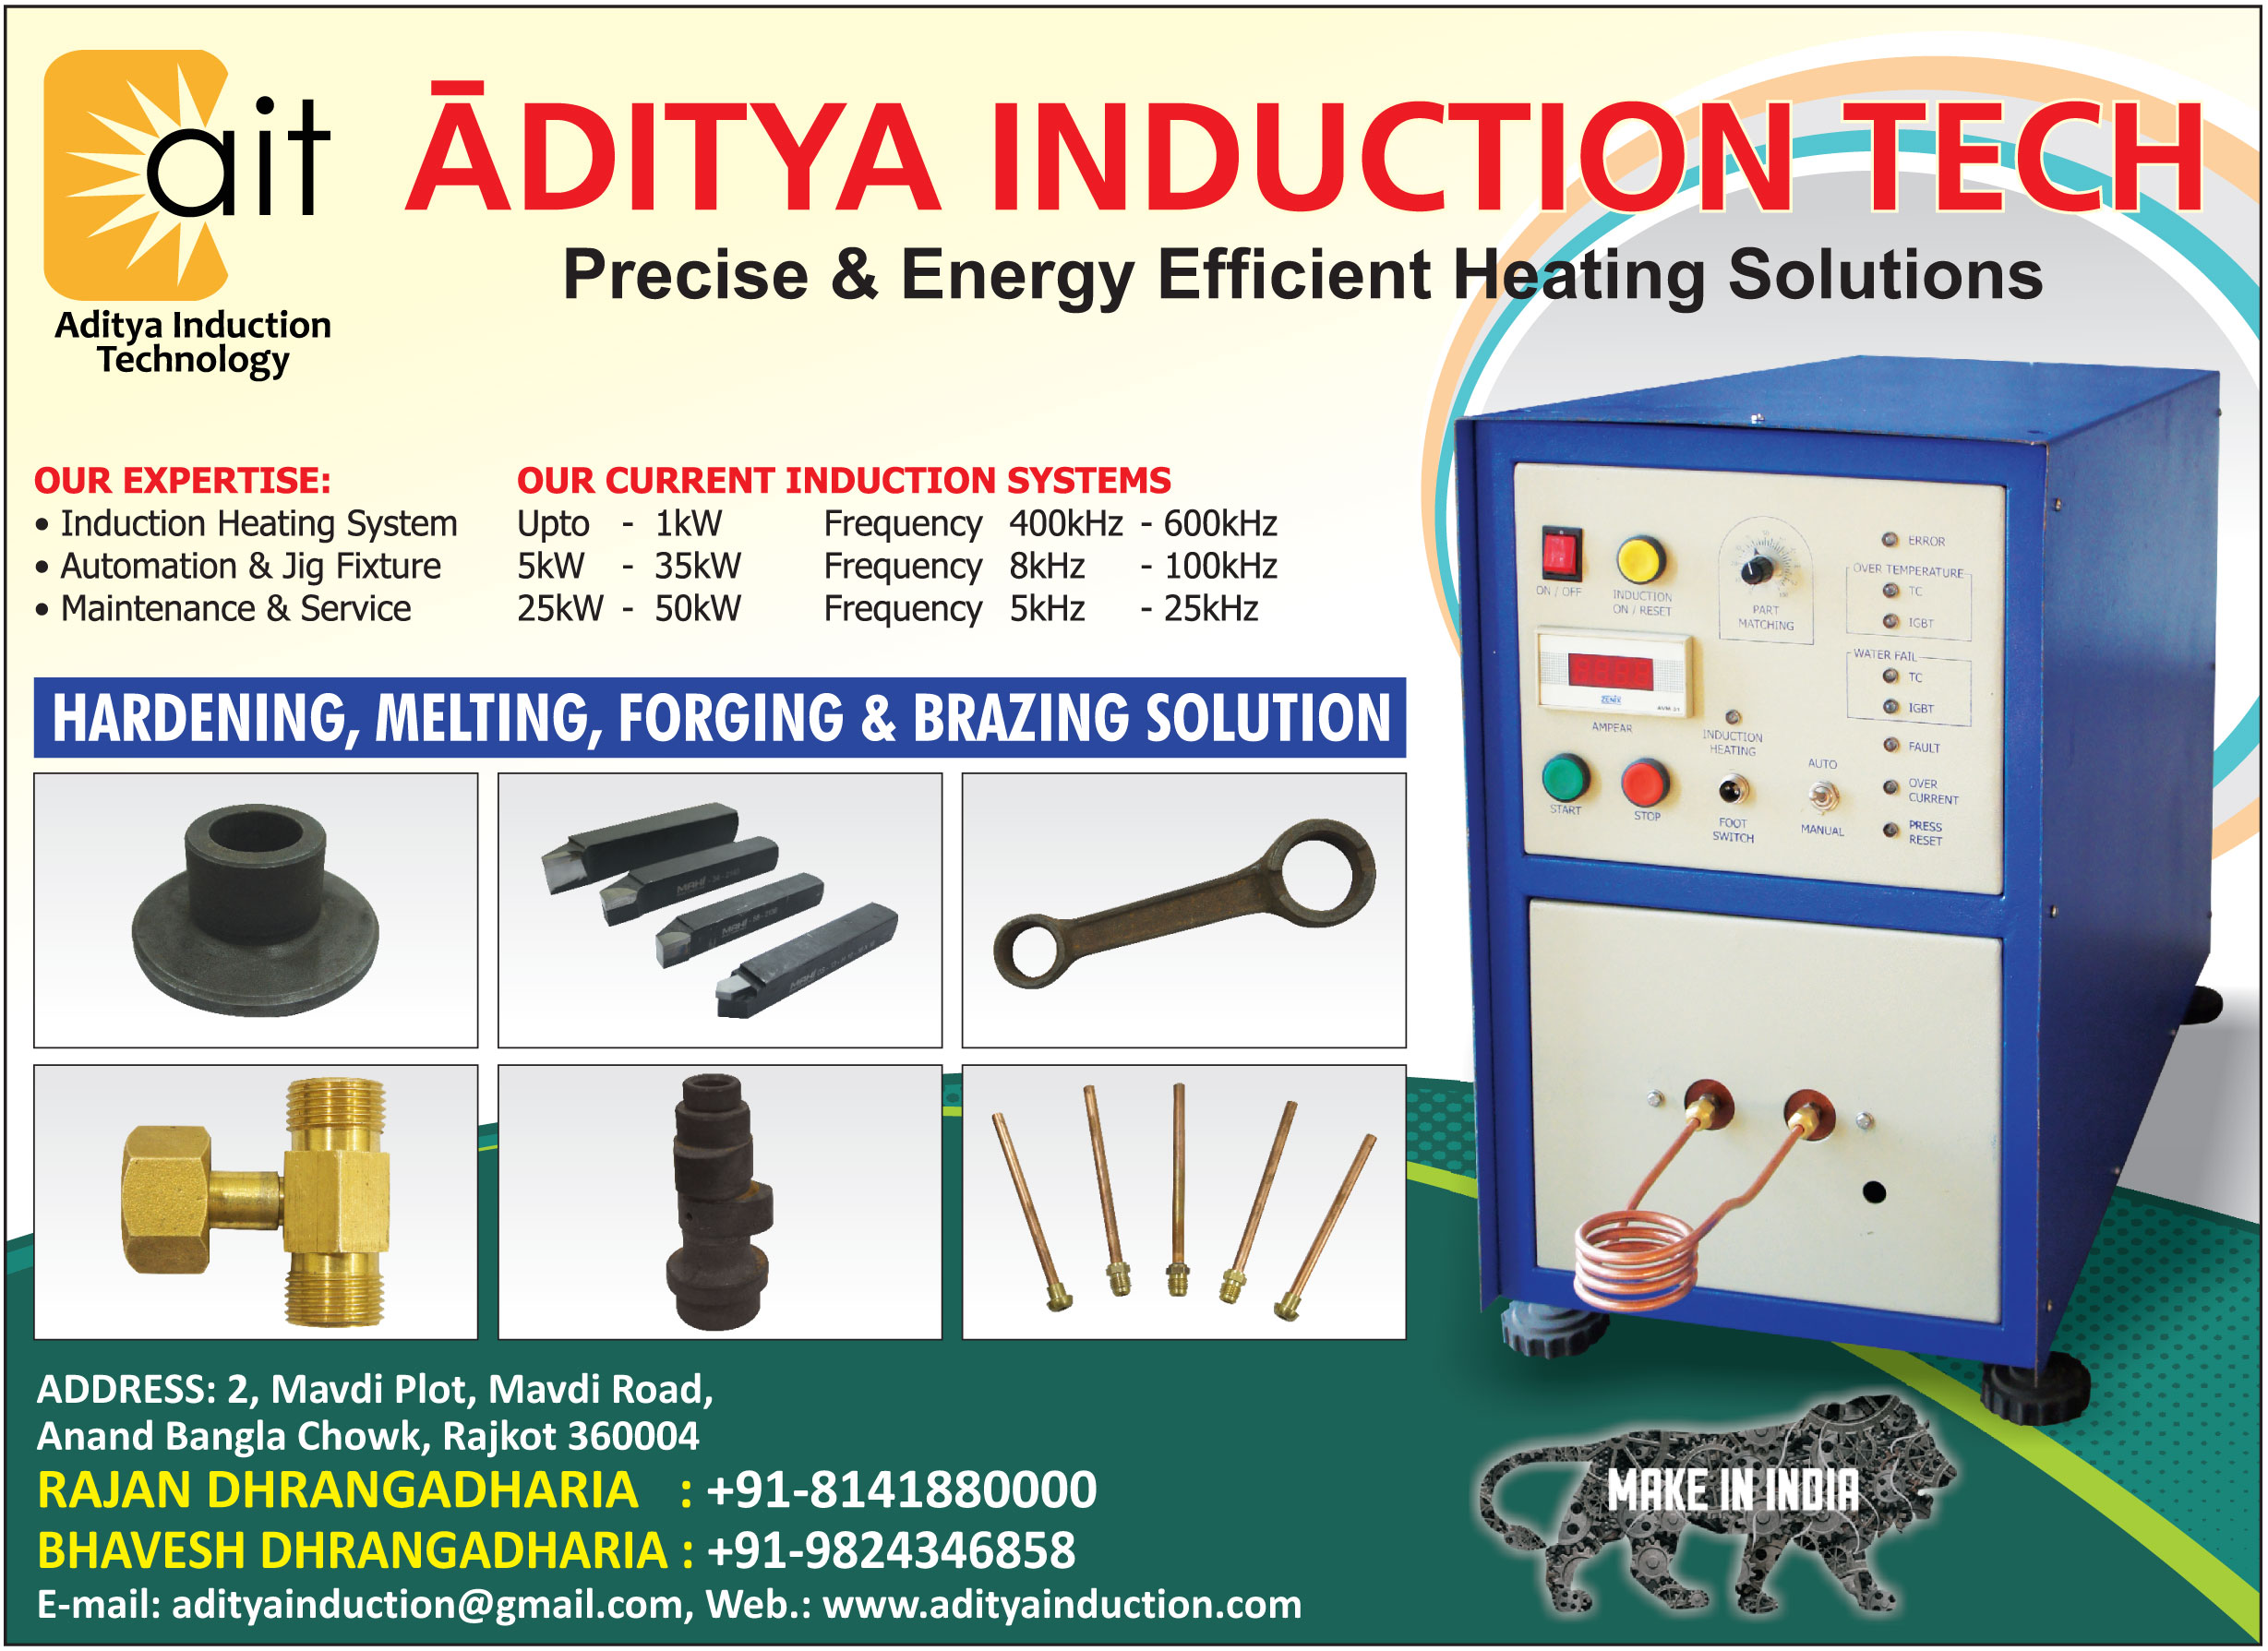 Induction Heating Systems, Jif Fixtures